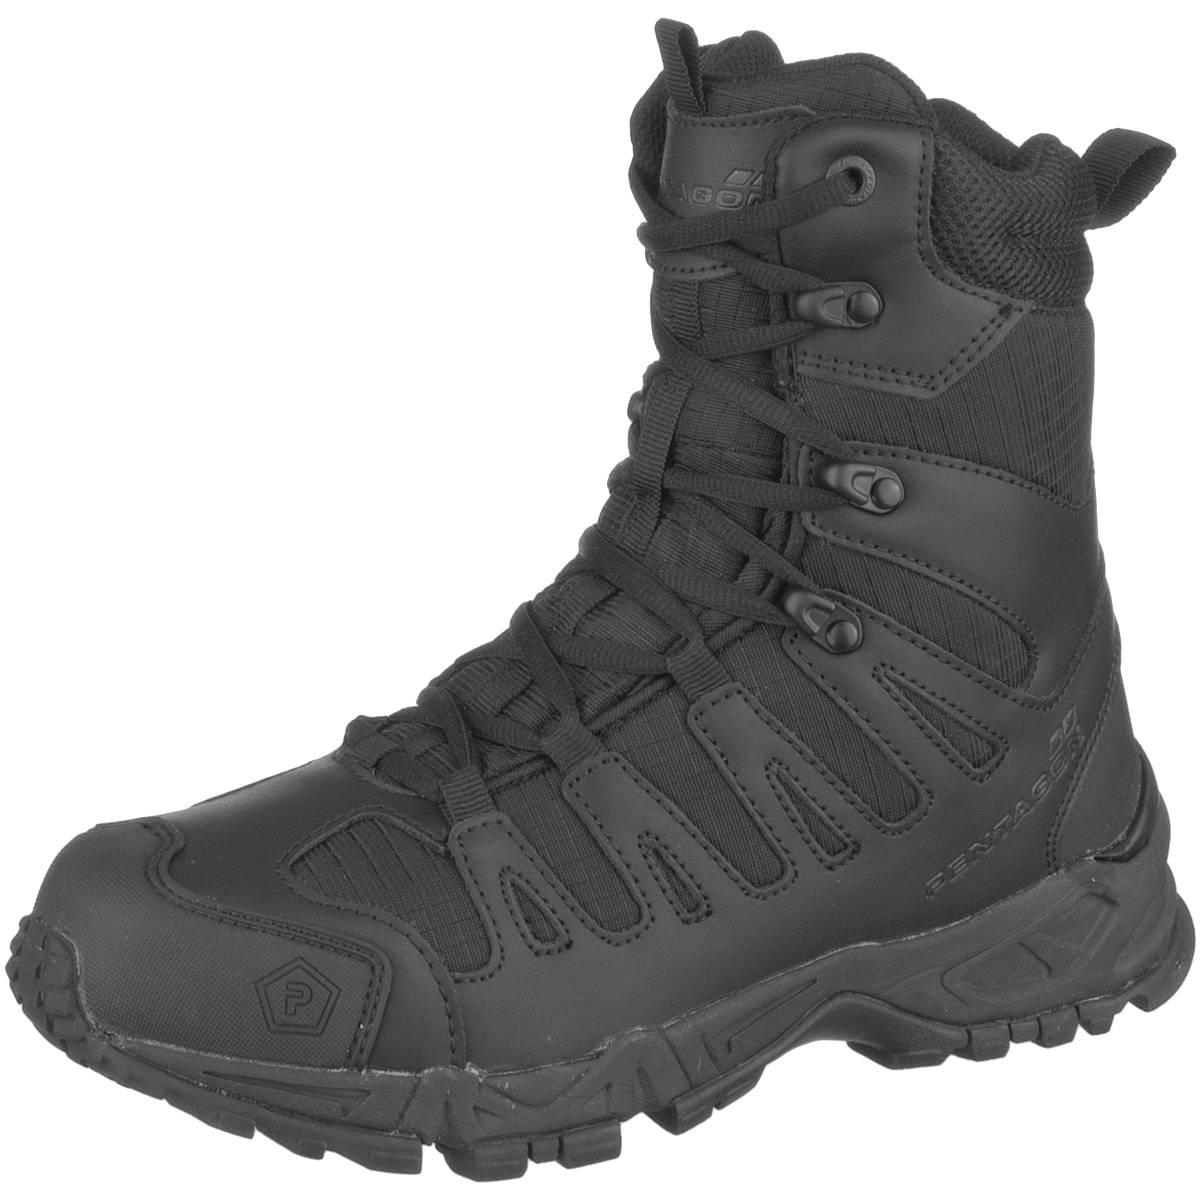 Pentagon Achilles 8 Tactical Boots Hiking Hunting Mens